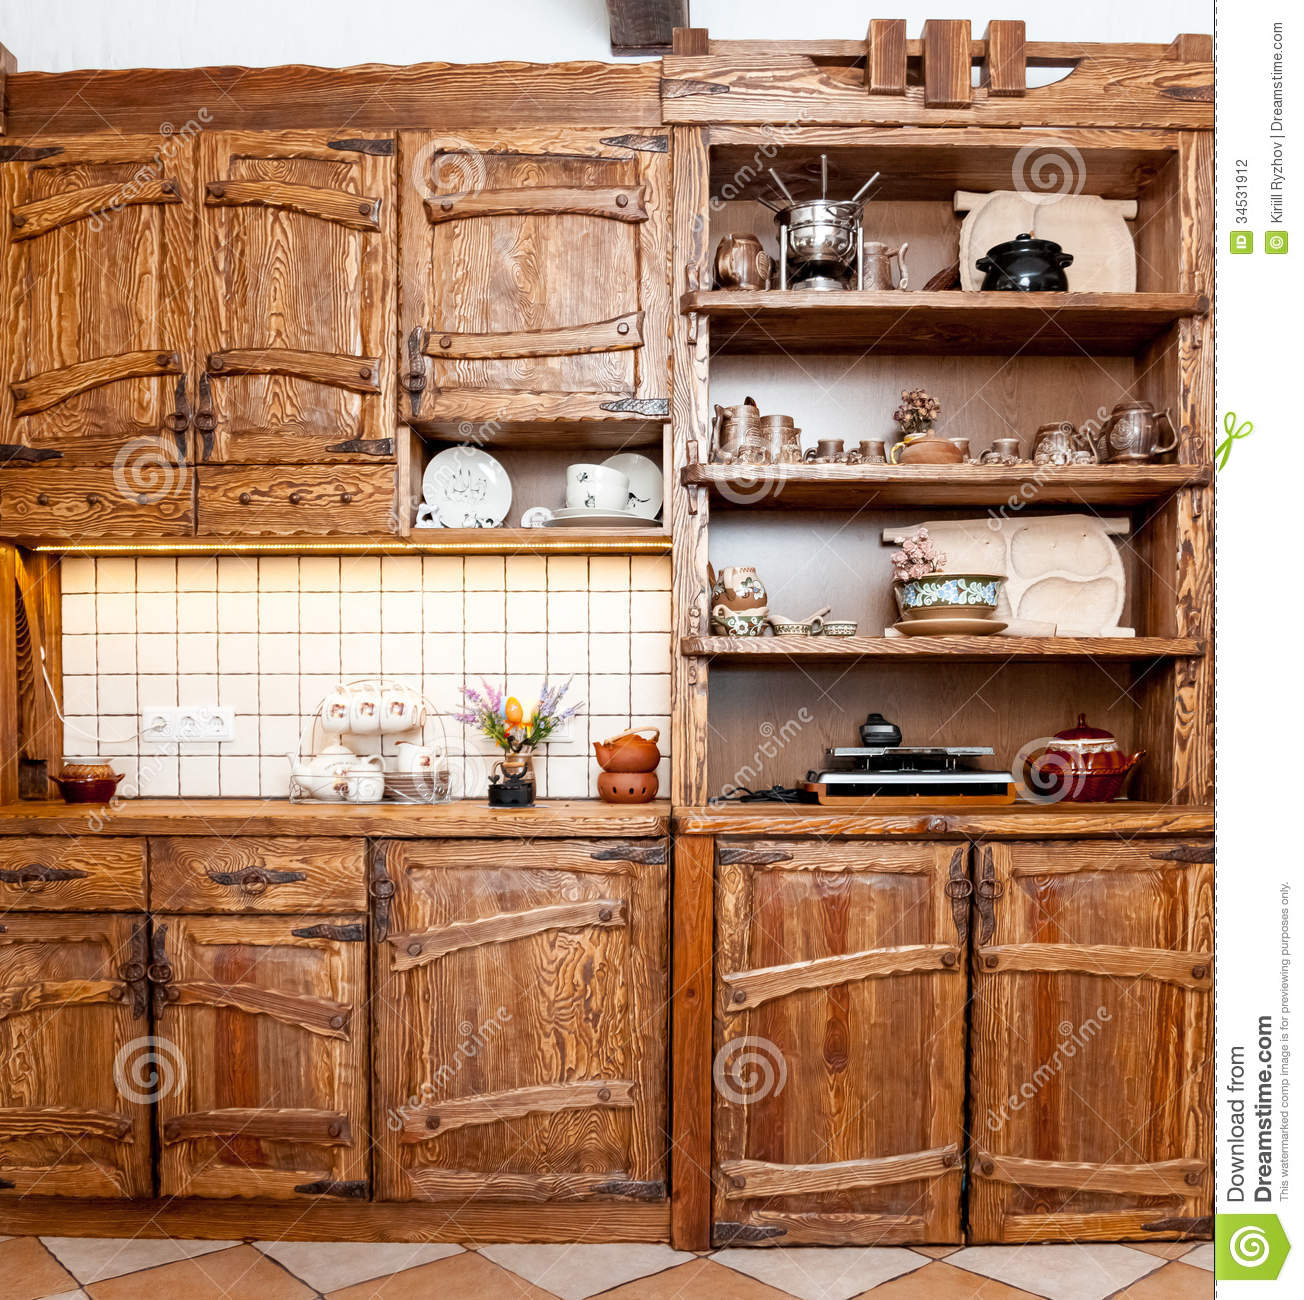 stock photography furniture kitchen country style wooden image kitchen wooden chairs Furniture for kitchen in country style